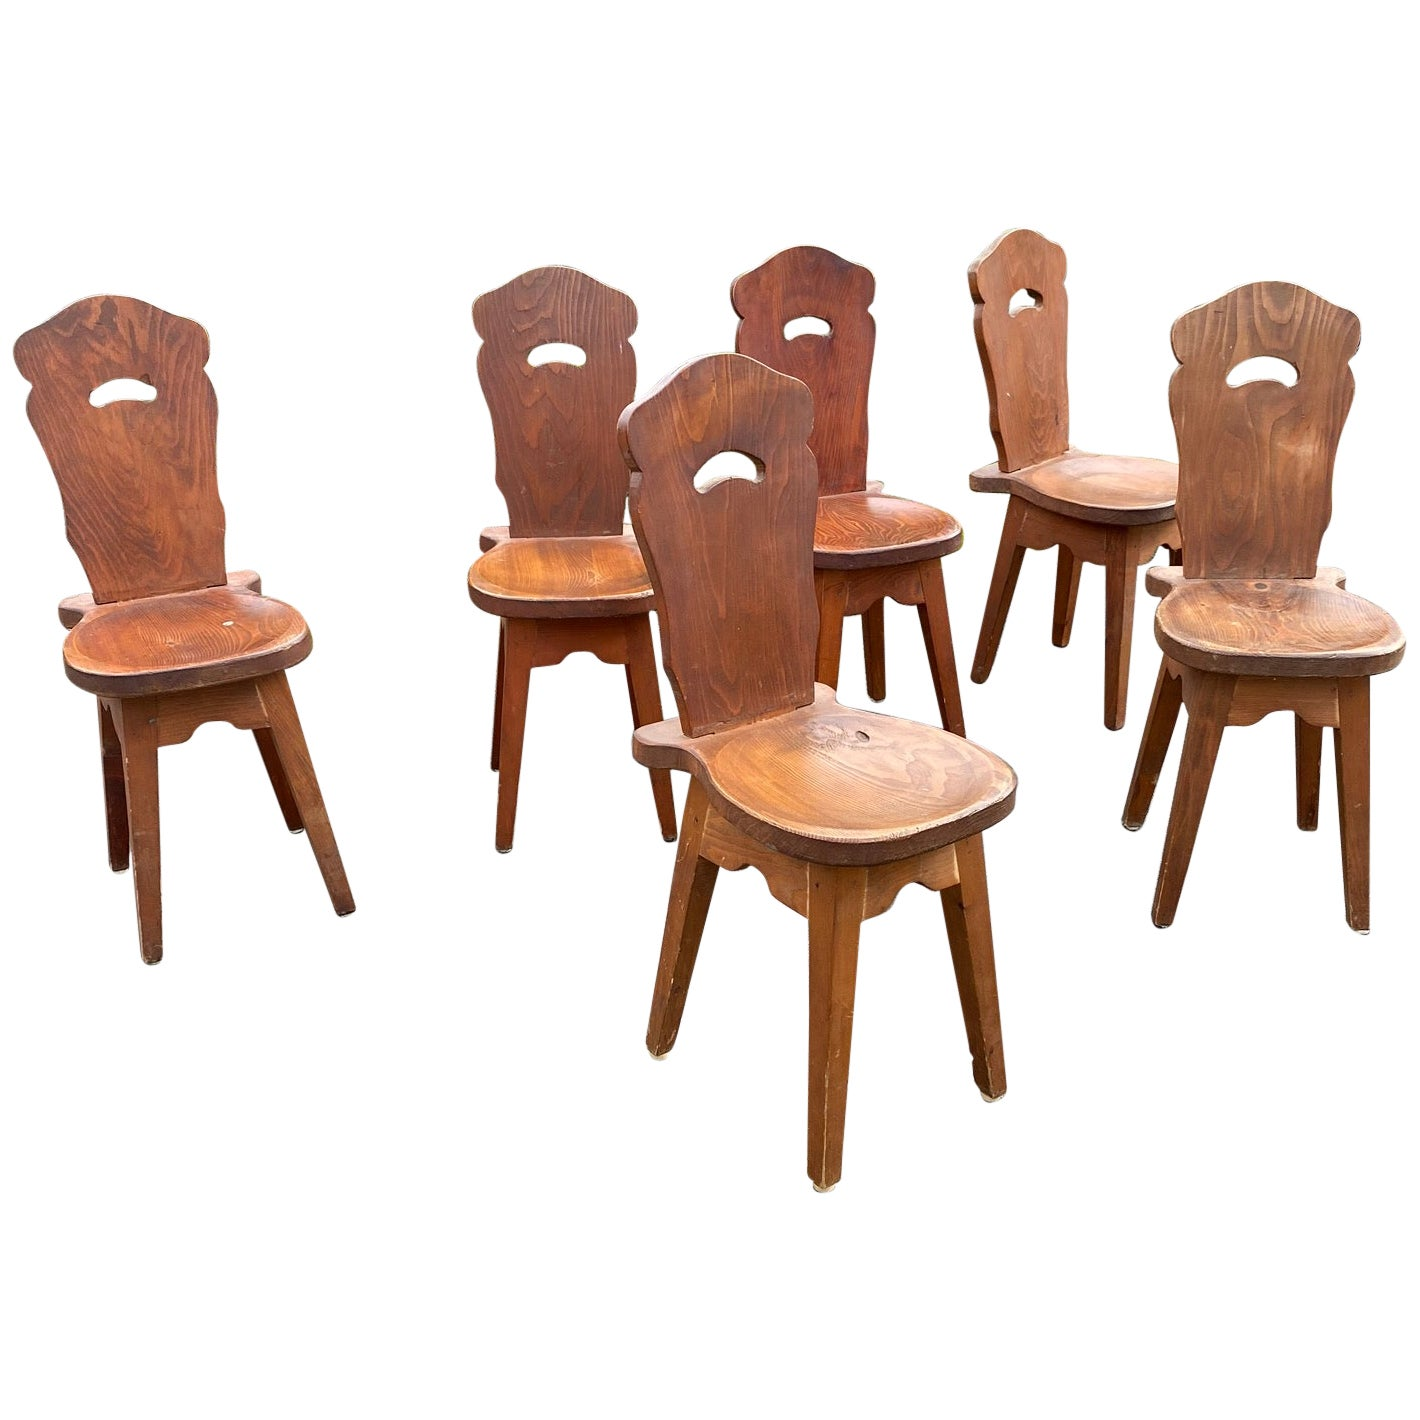 6 Brutalist Mountain Chairs, in Pine circa 1950